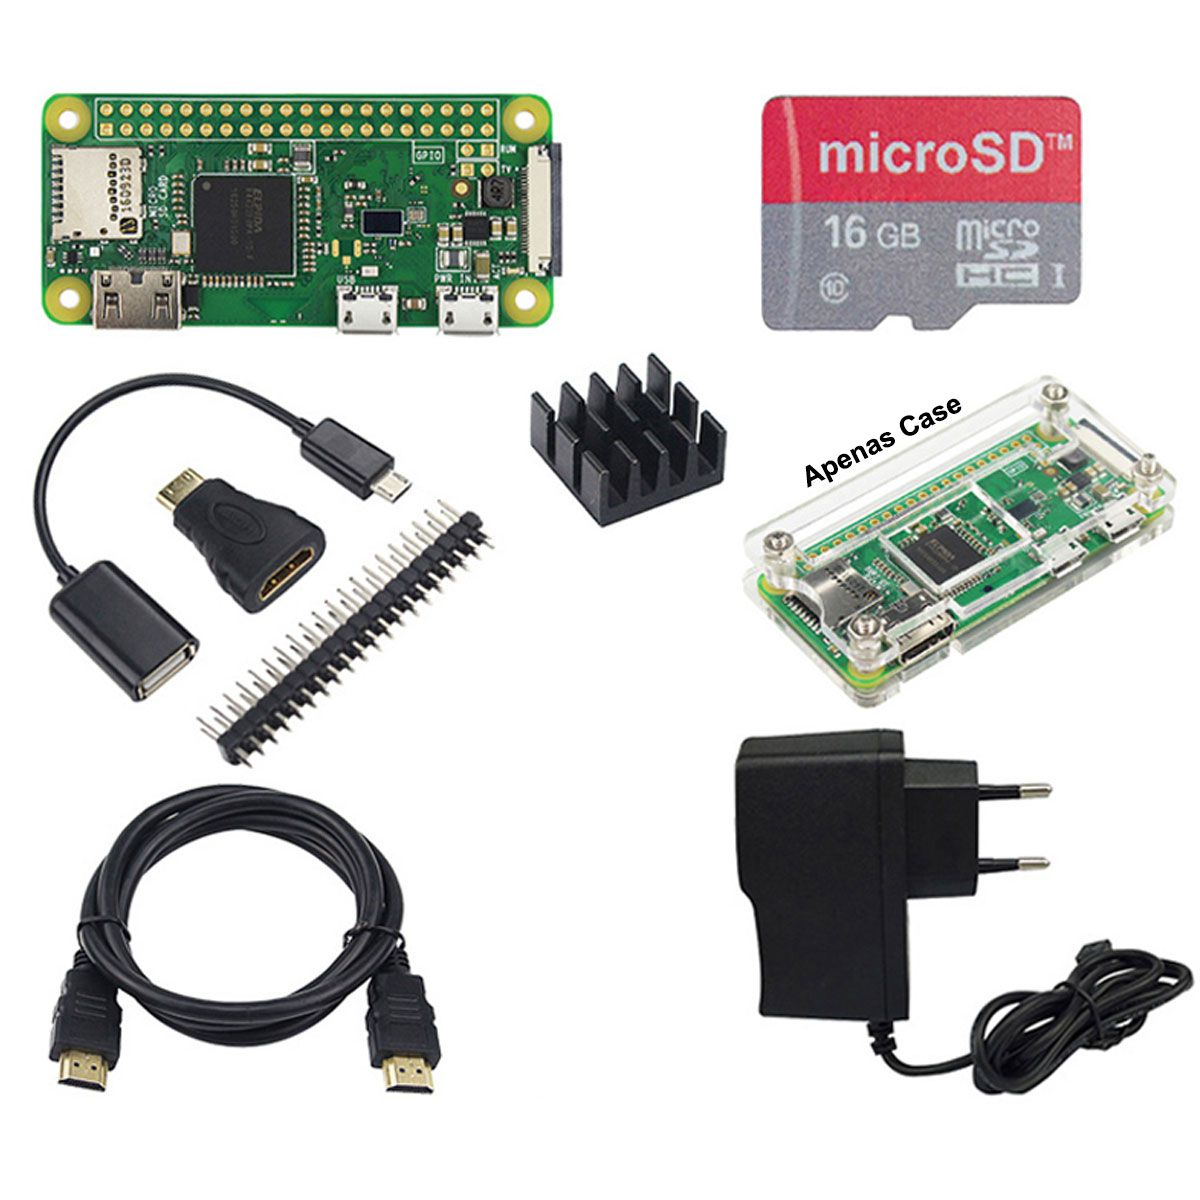 Kit com Raspberry Pi Zero W H, Fonte, Case, Cartão 16GB, Cabo HDMI, Adaptador HDMI e USB